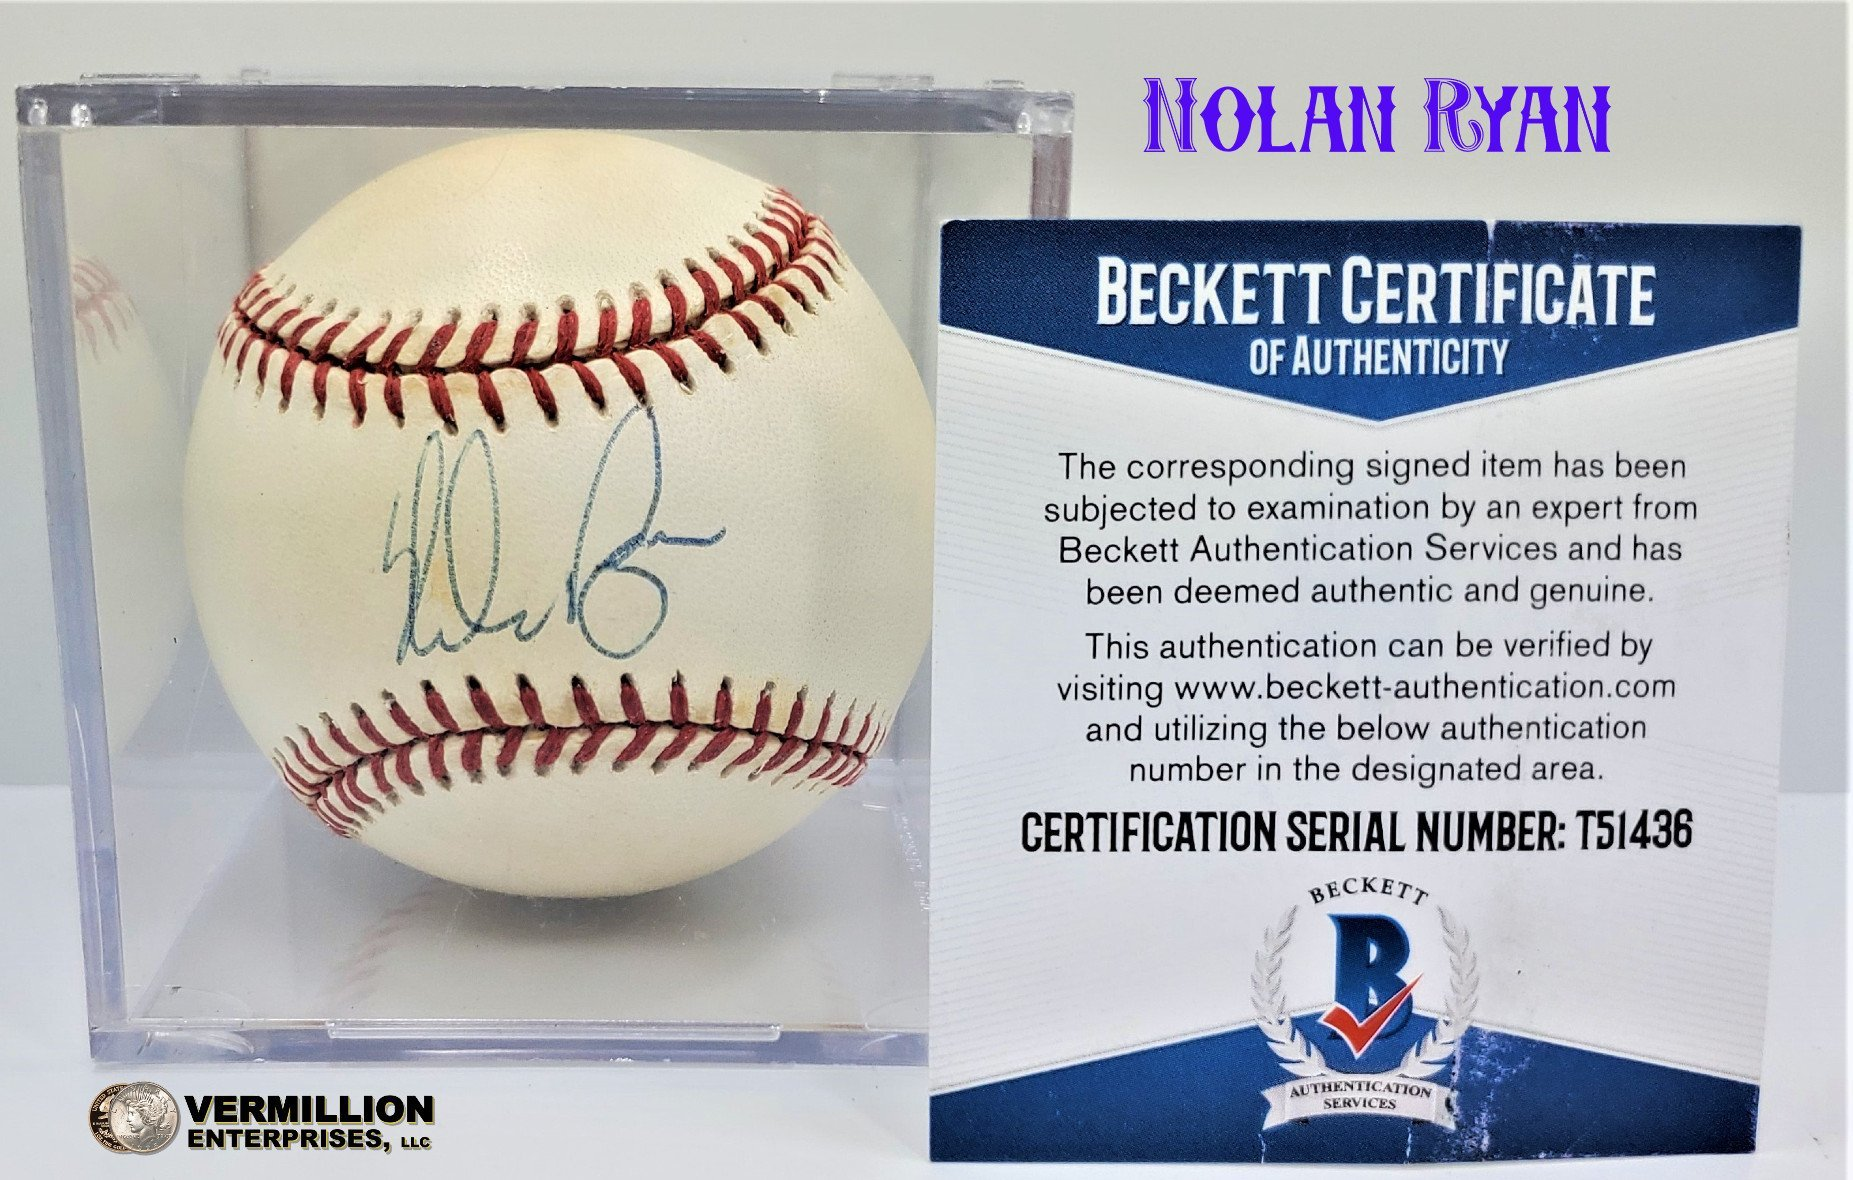 Vermillion enterprises buys nolan ryan beckett authenticated autograph baseballs and sports memorabilia. Including Graded Sports Cards and Pre-1980 Raw Sports Cards - 5324 Spring Hill Drive Spring Hill FL 34606 (352) 585-9772